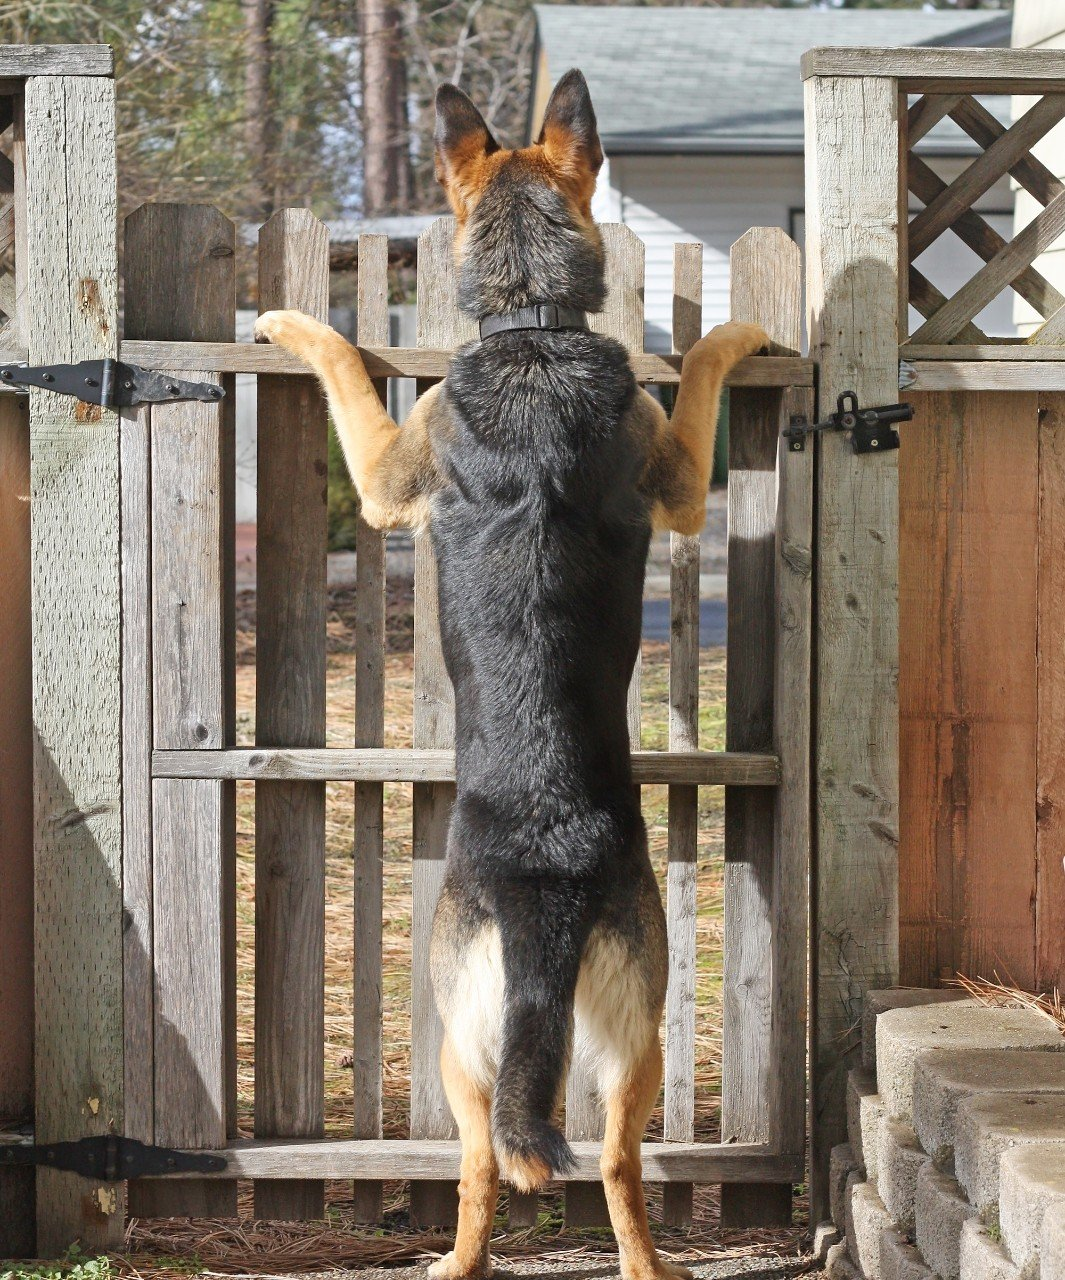 Female German Shepherd standing and looking out on the neighborhood from her fenced yard.